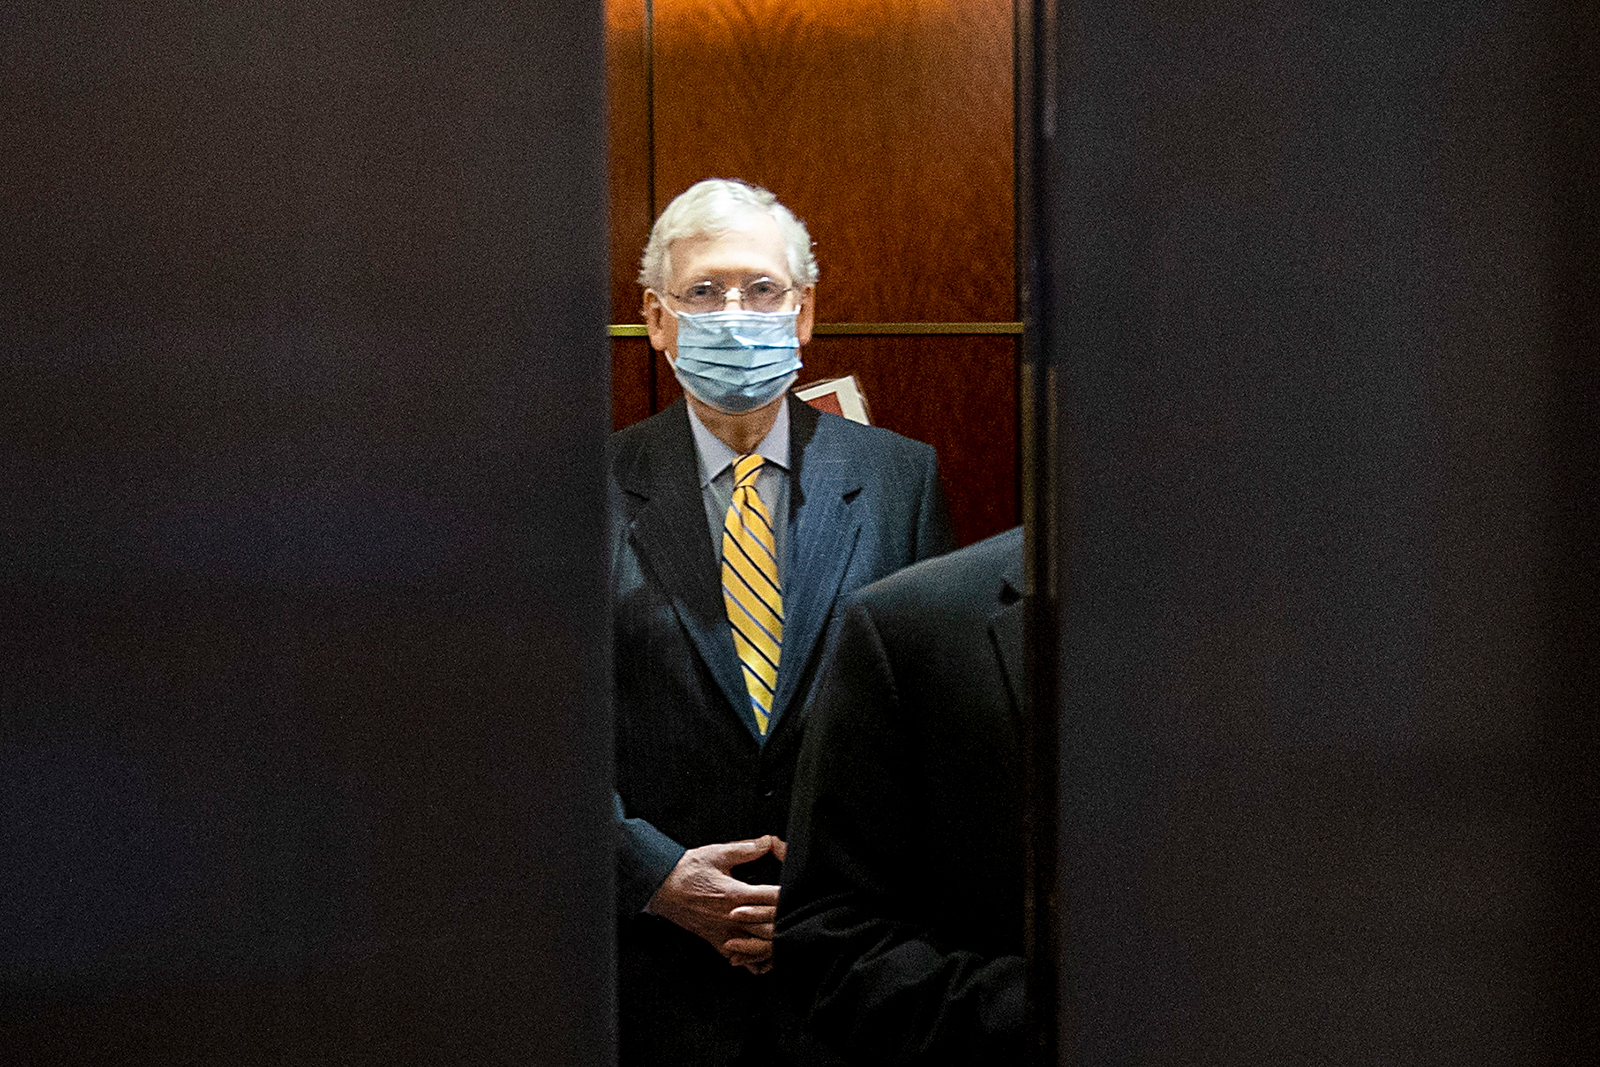 Senate Majority Leader Mitch McConnell (R-KY) leaves after a closed door briefing at the US Capitol on July 2 in Washington.